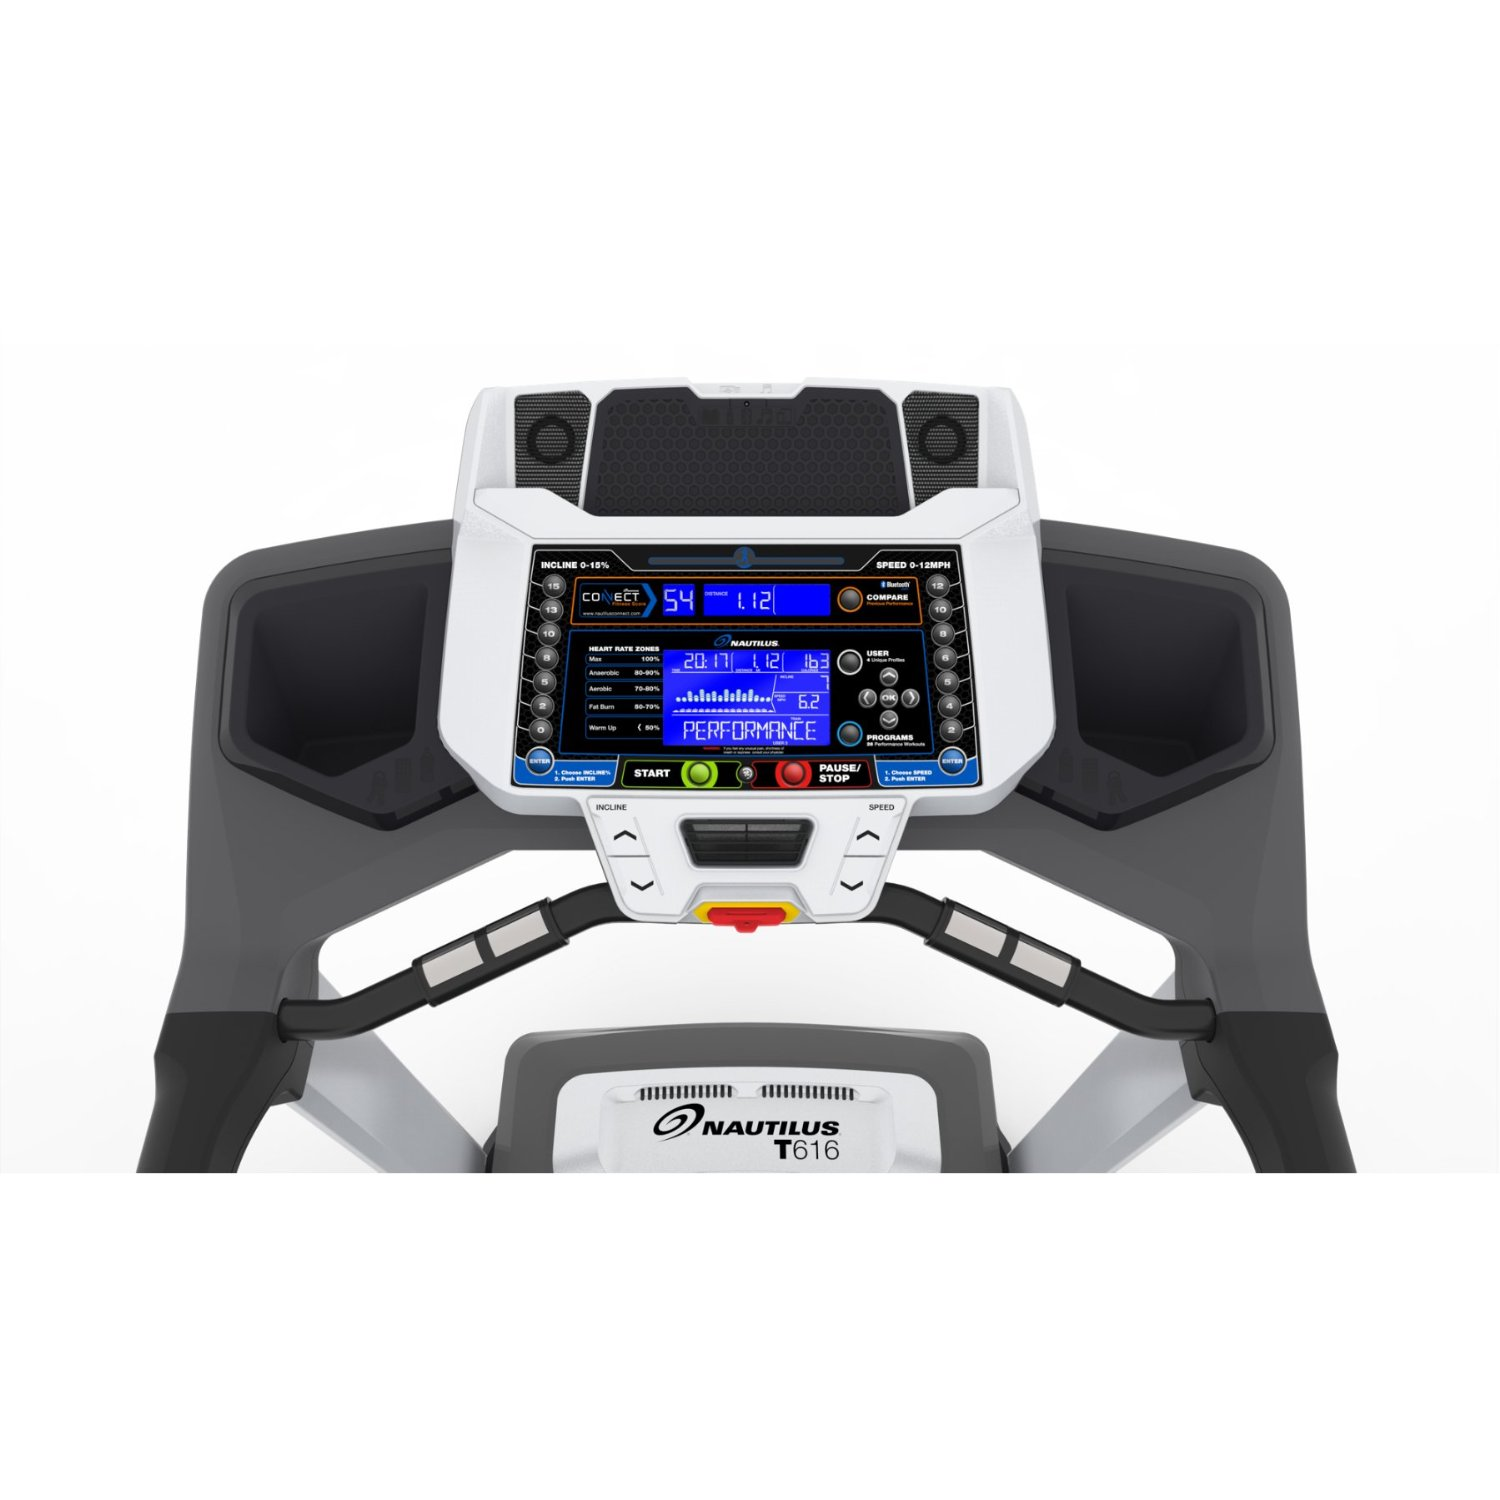 Nautilus T616 Treadmill Console and Display